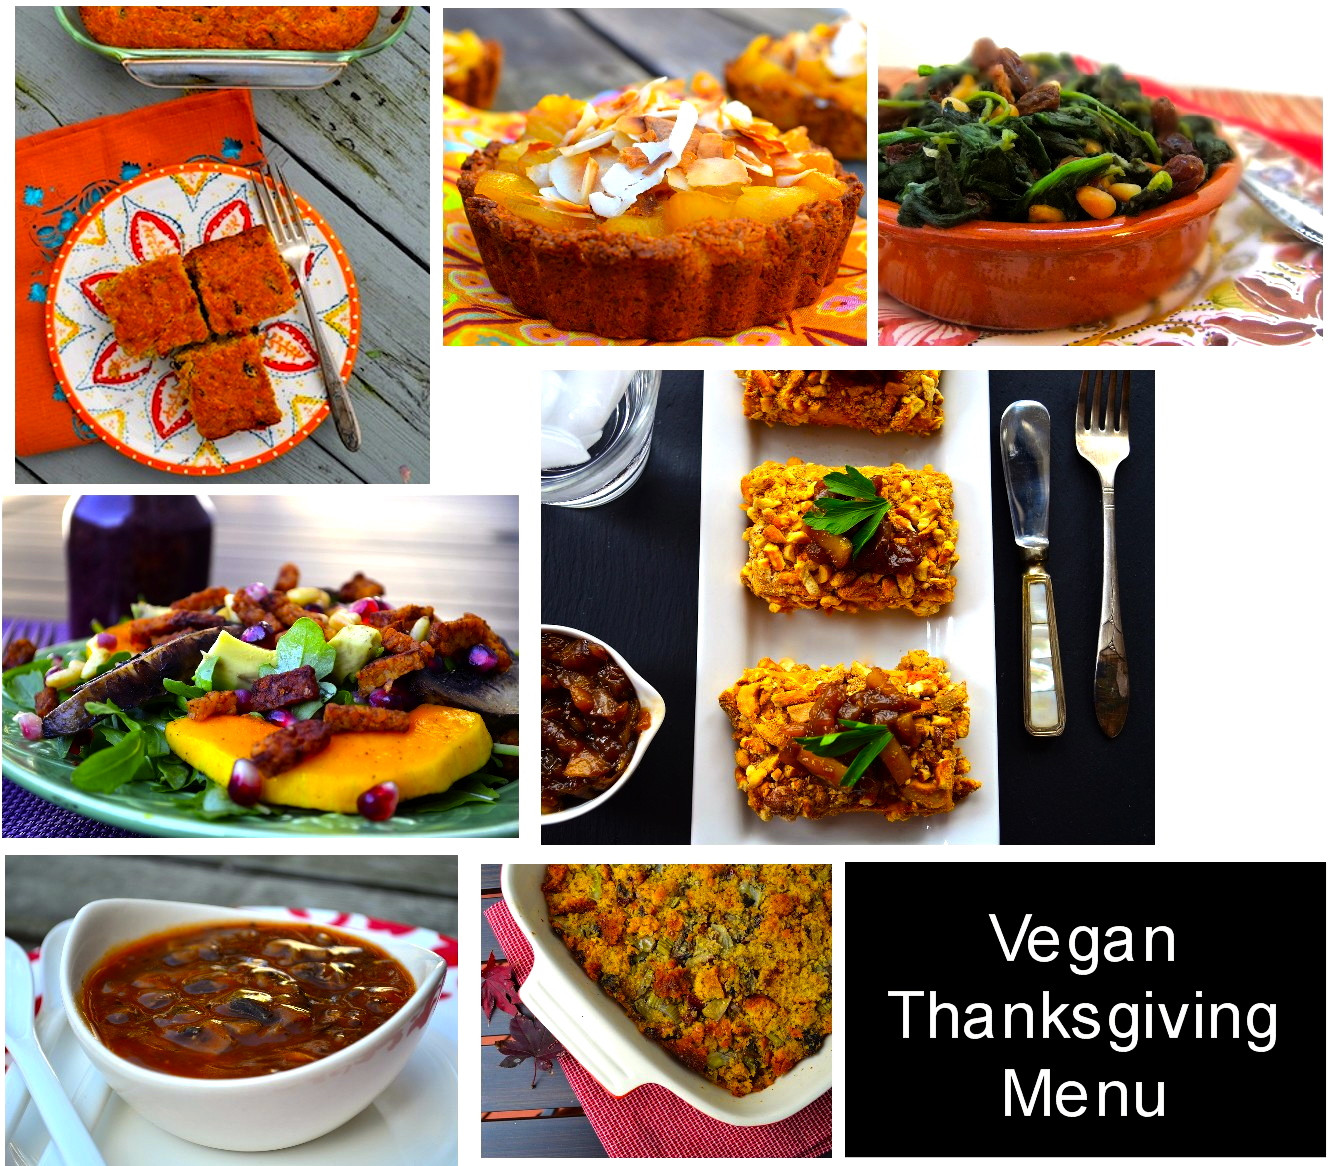 Vegan Thanksgiving Menu  Put It All To her Vegan Thanksgiving Menu May I Have